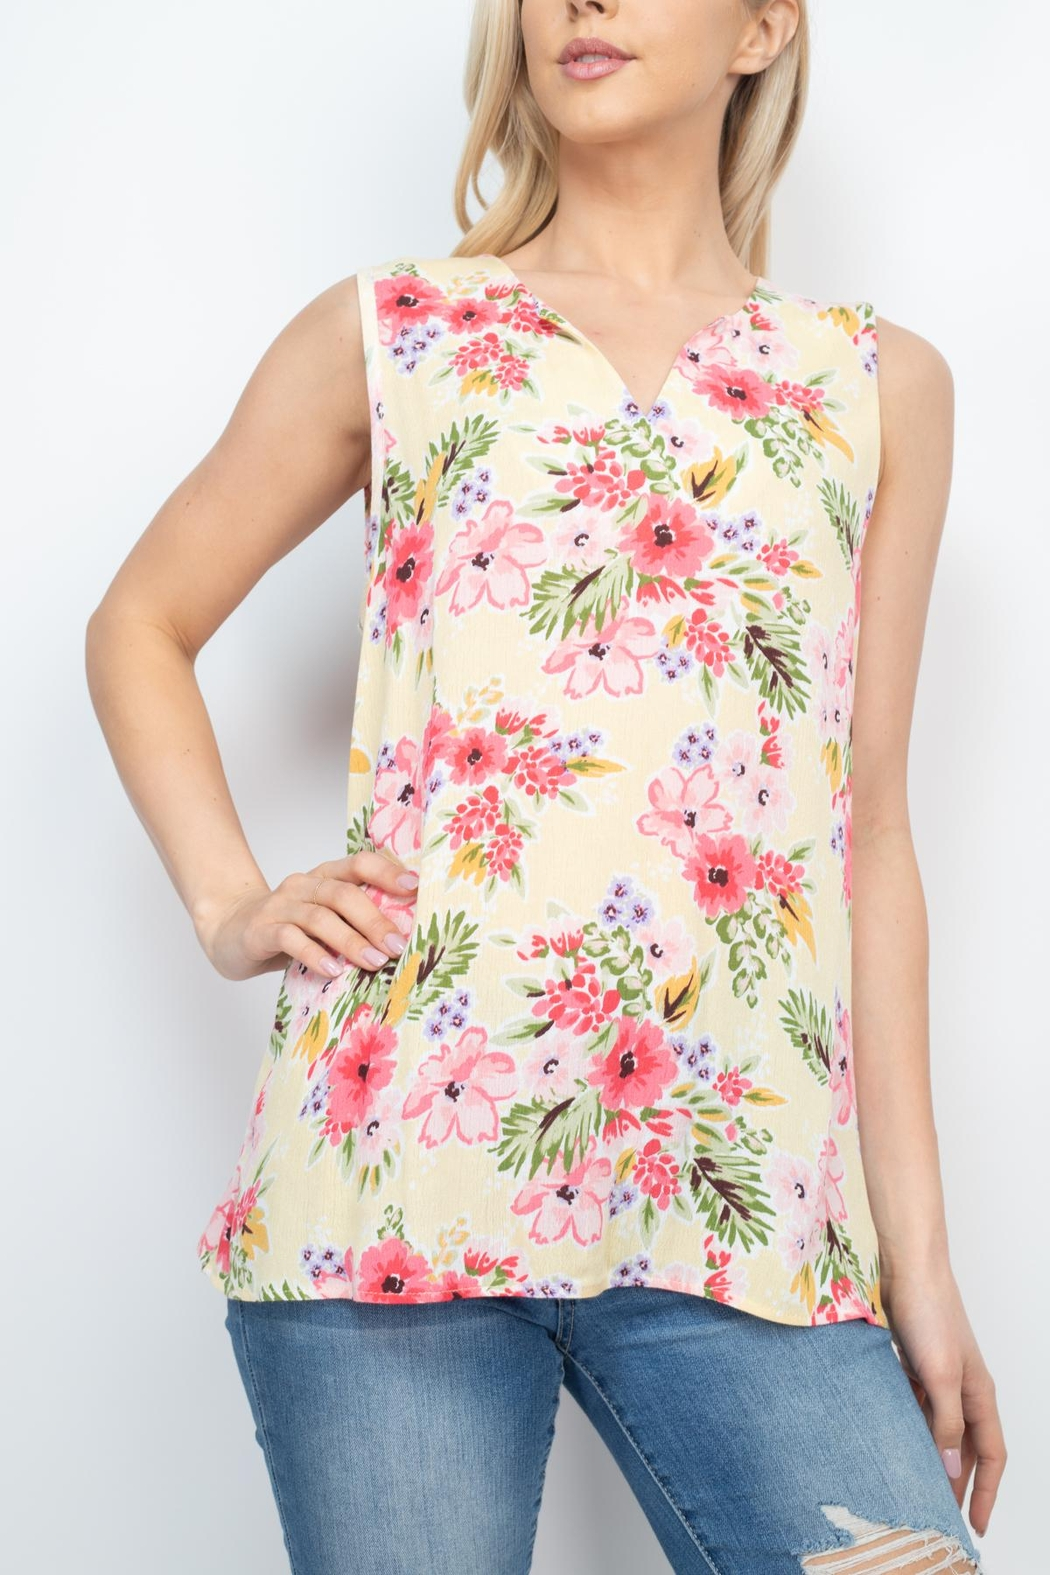 Riah Fashion Notch-Neck-Sleeveless-Floral-Top - Front Full Image